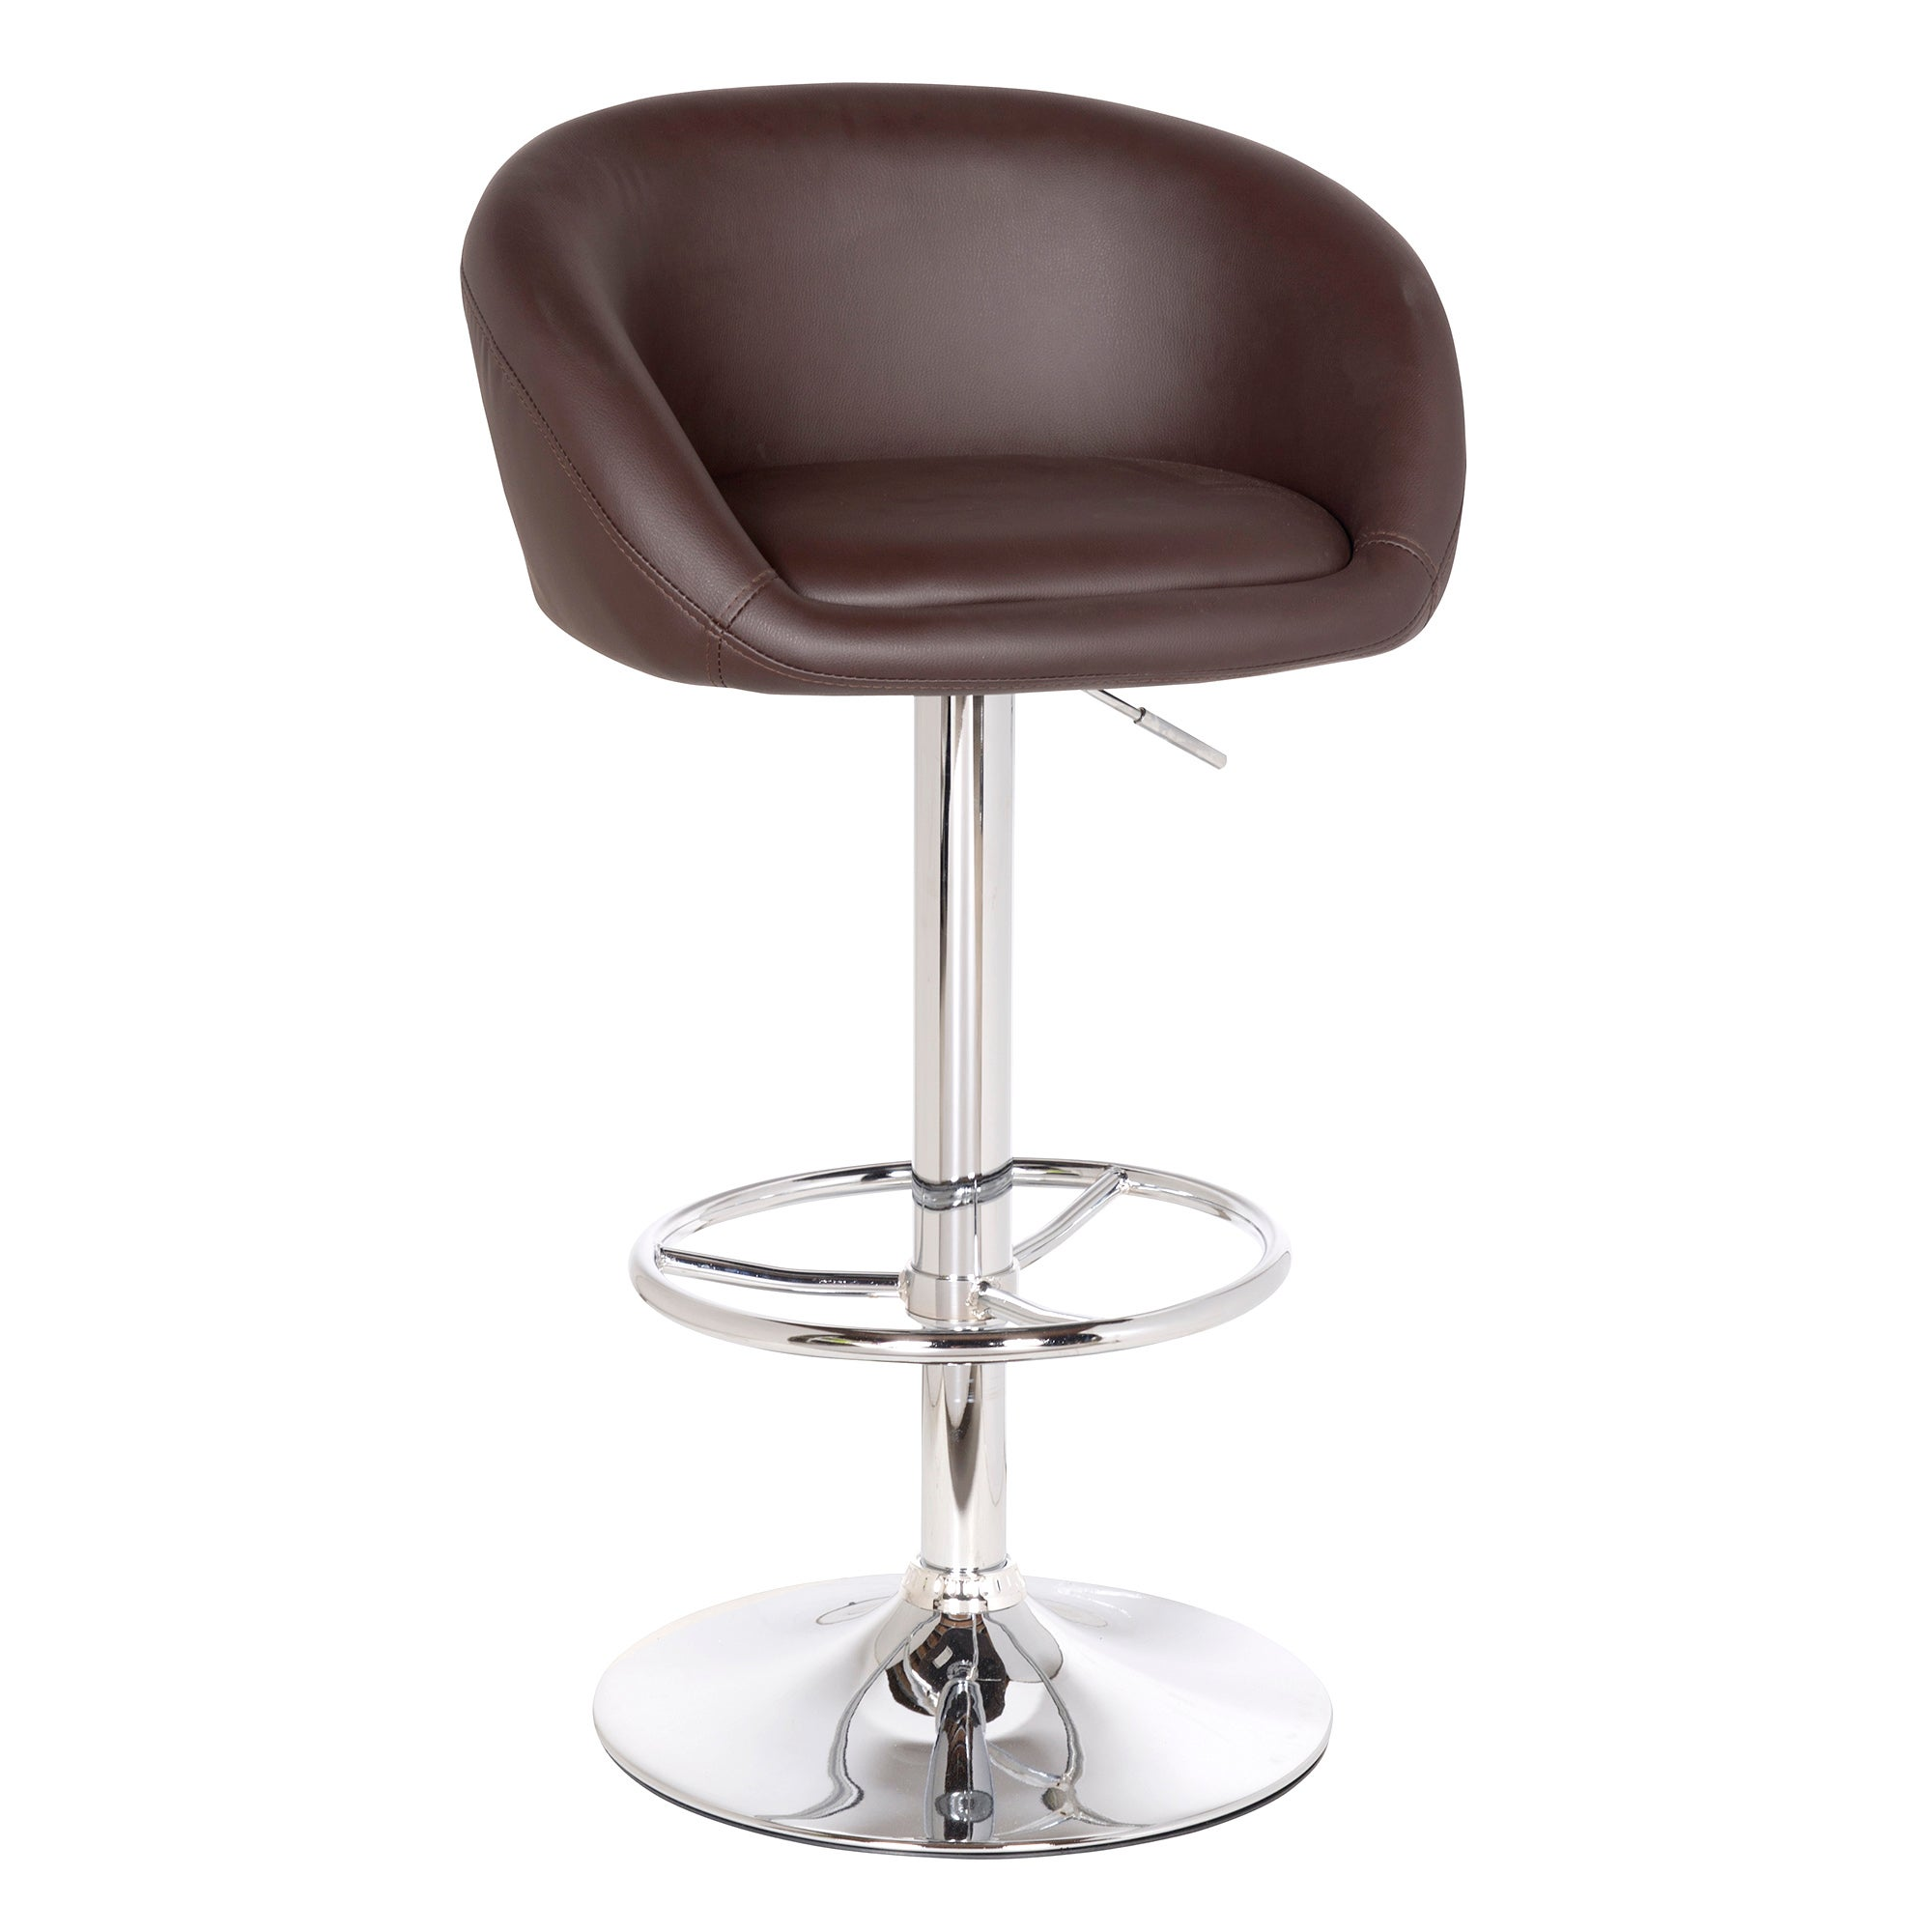 Apollo Brown Upholstered Gas Lift Bar Stool